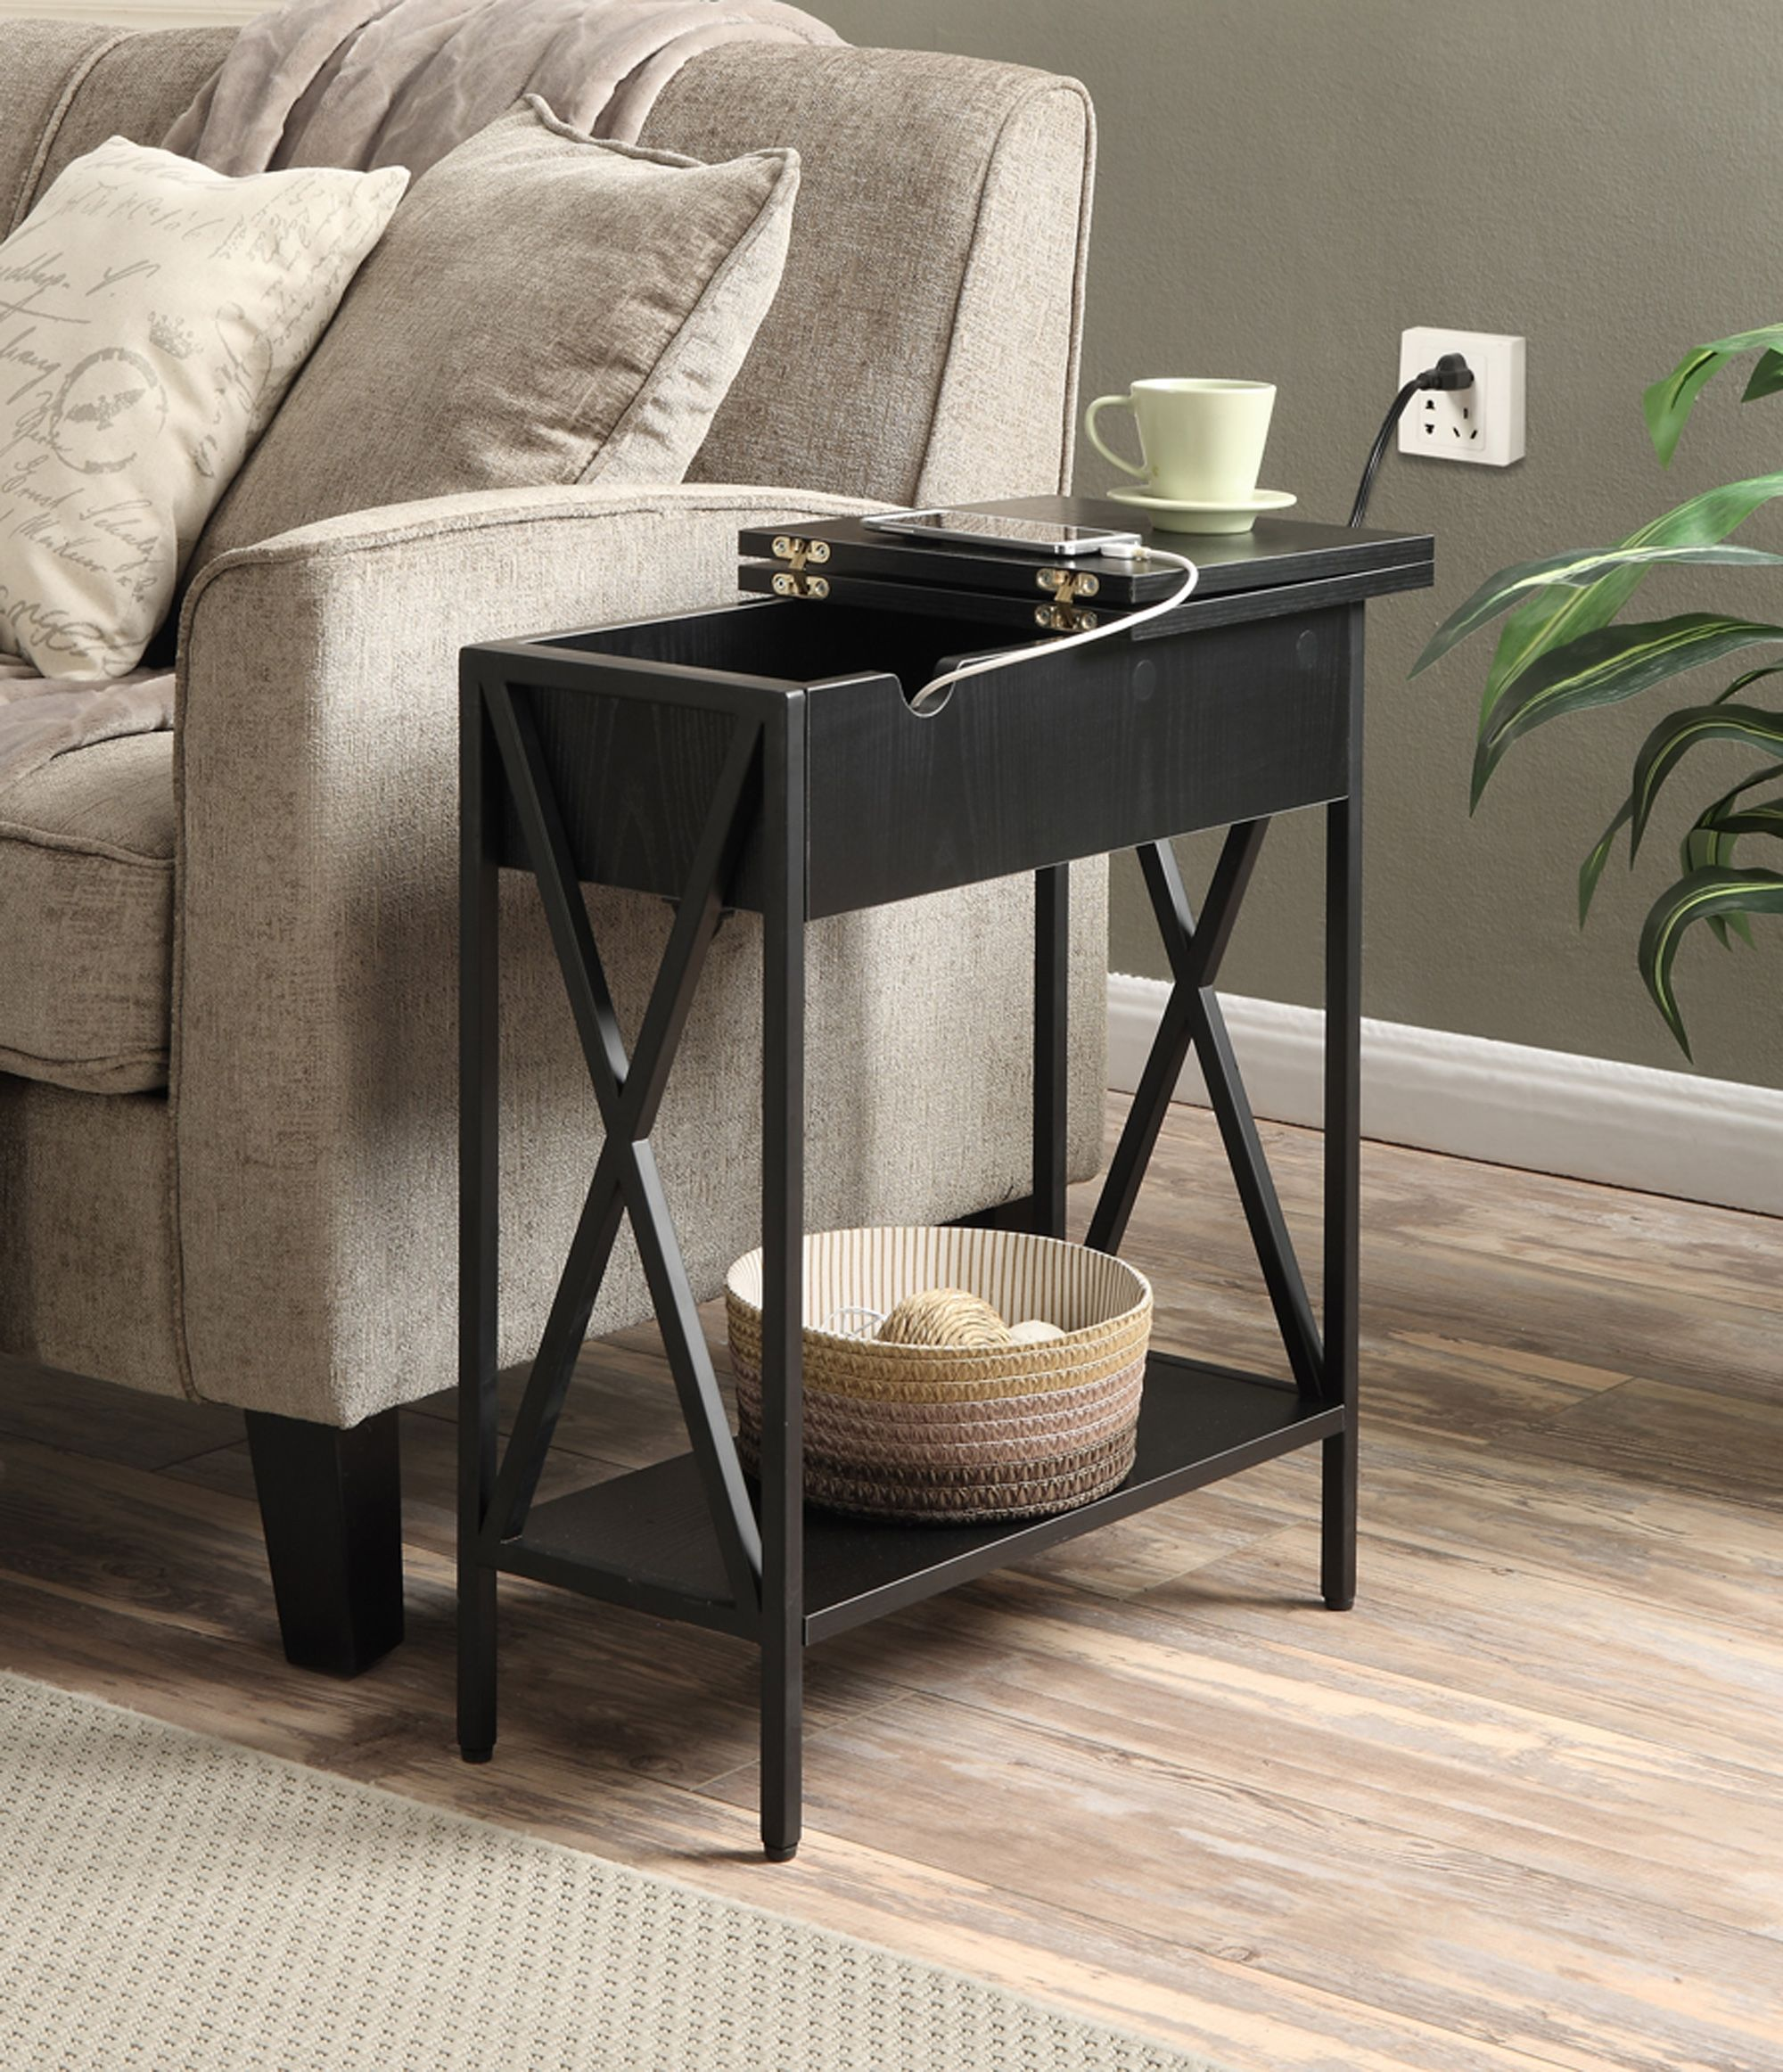 Convenience Concepts Tucson Flip Top End Table With Charging Station Walmart Com Flip Top Table End Tables With Storage End Tables